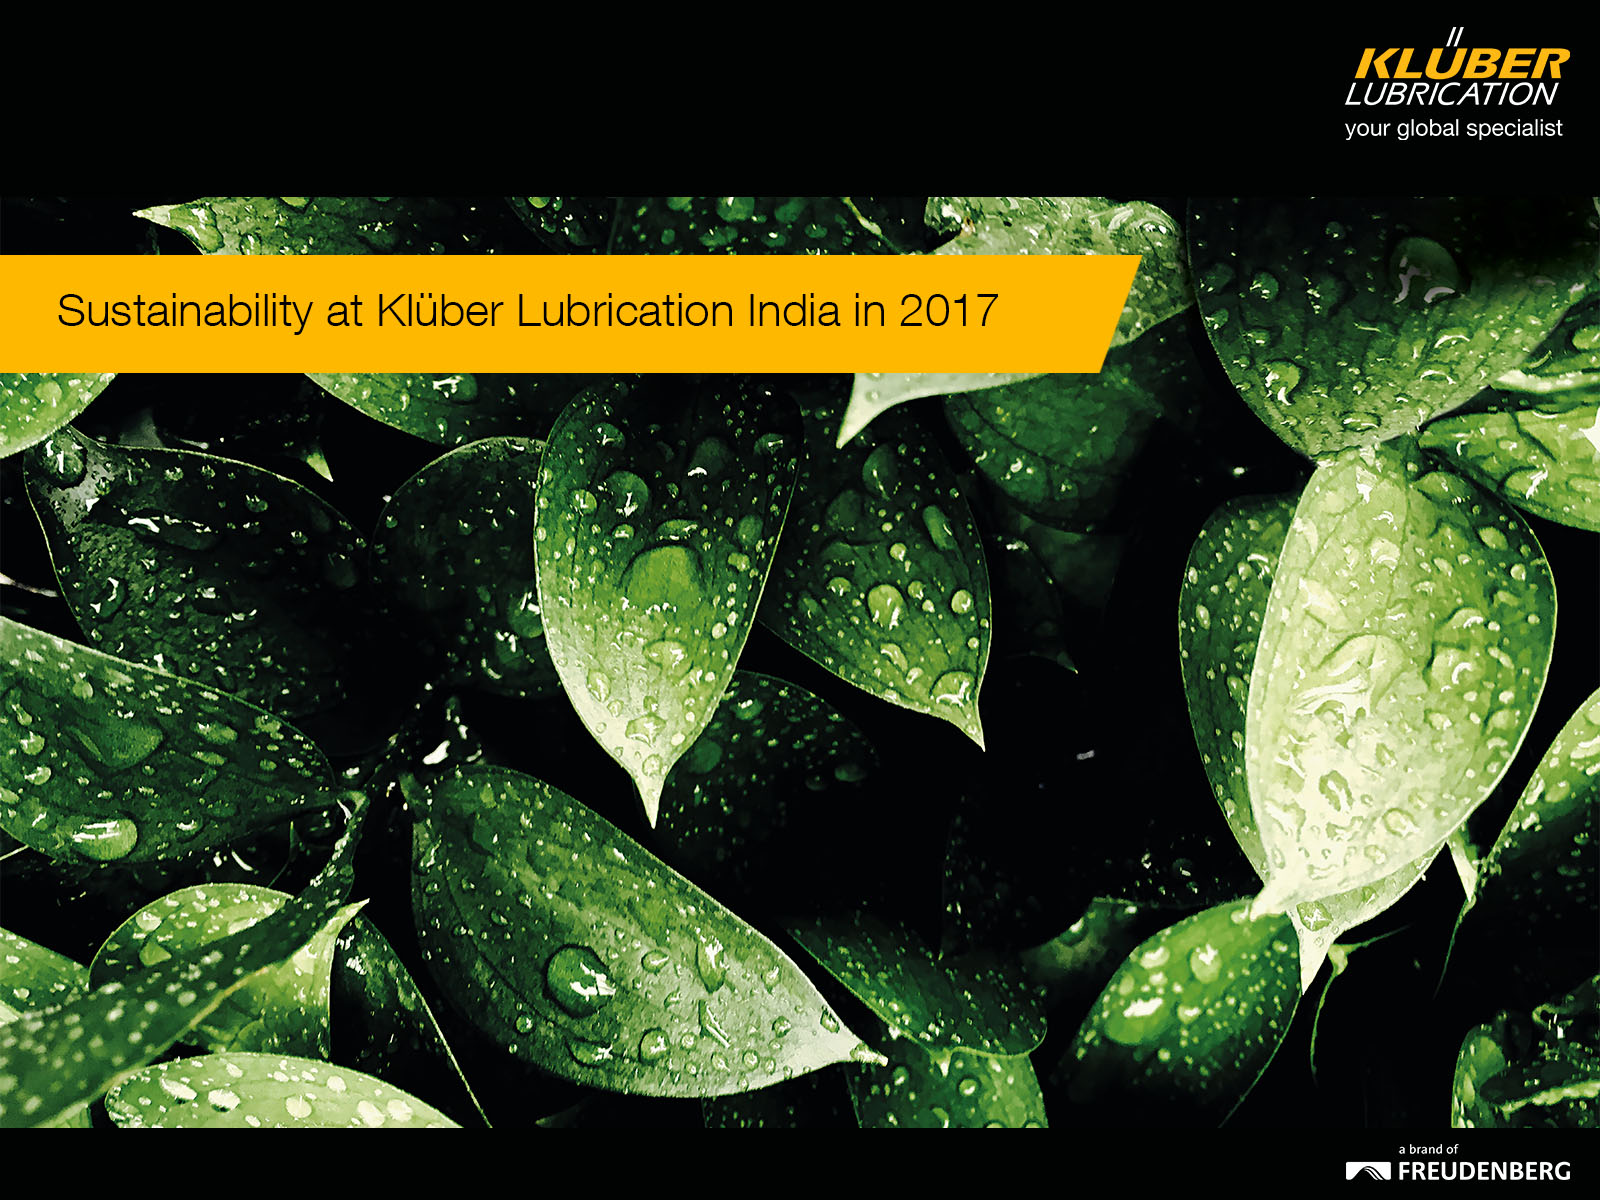 Sustainability at Klüber Lubrication India in 2017